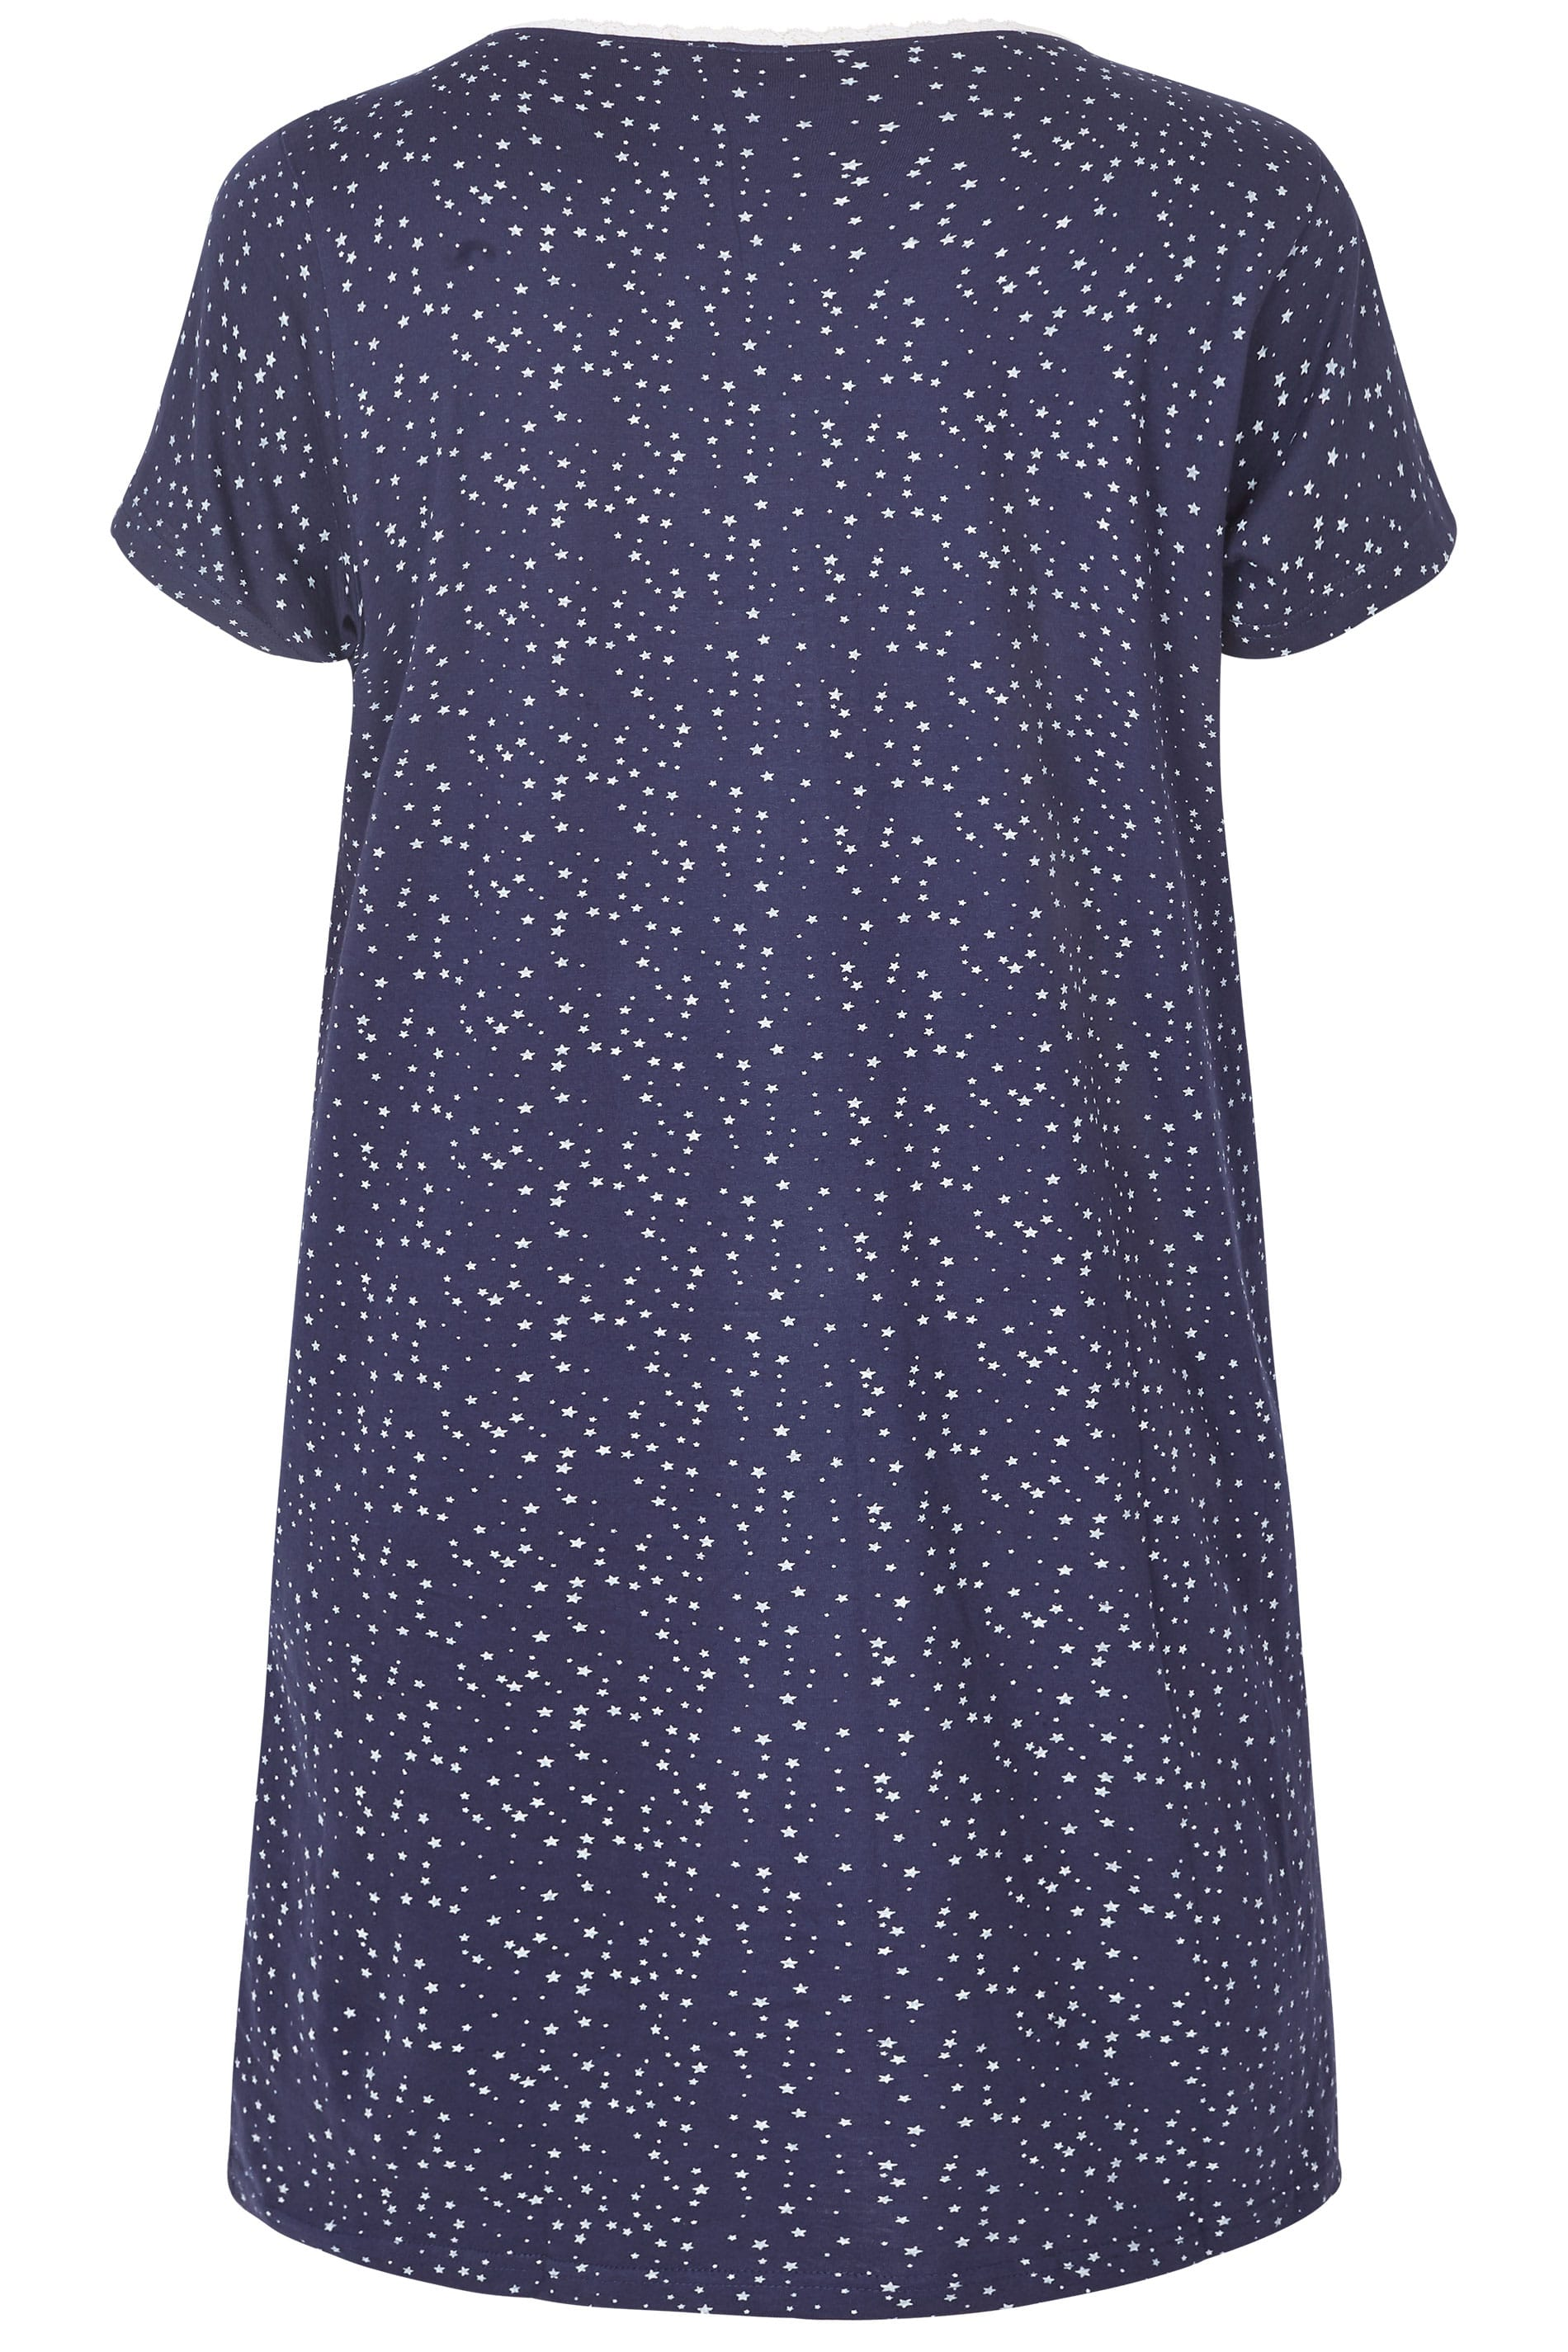 9d6c16c071 Navy   White Star Print Nightdress. ‹ ›